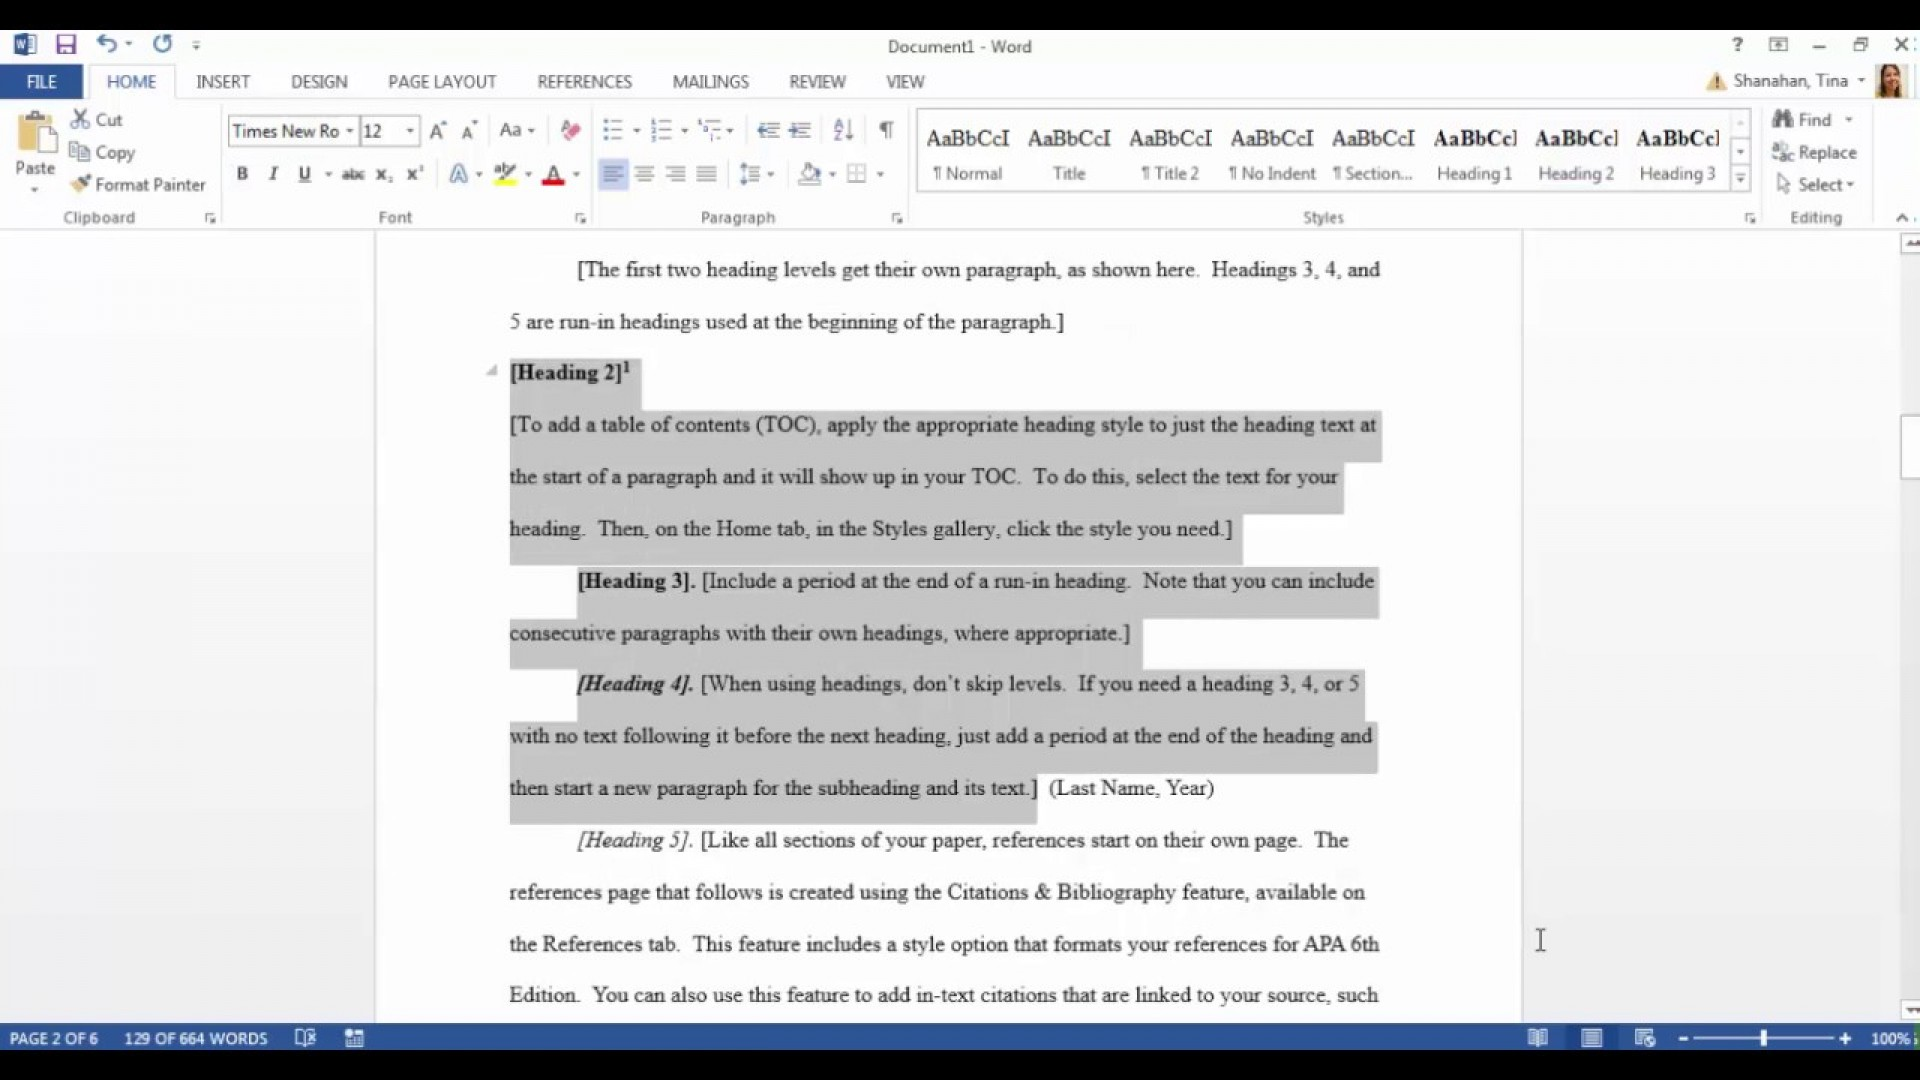 018 Research Paper Maxresdefault Apa Template Unusual Doc Google Docs 1920